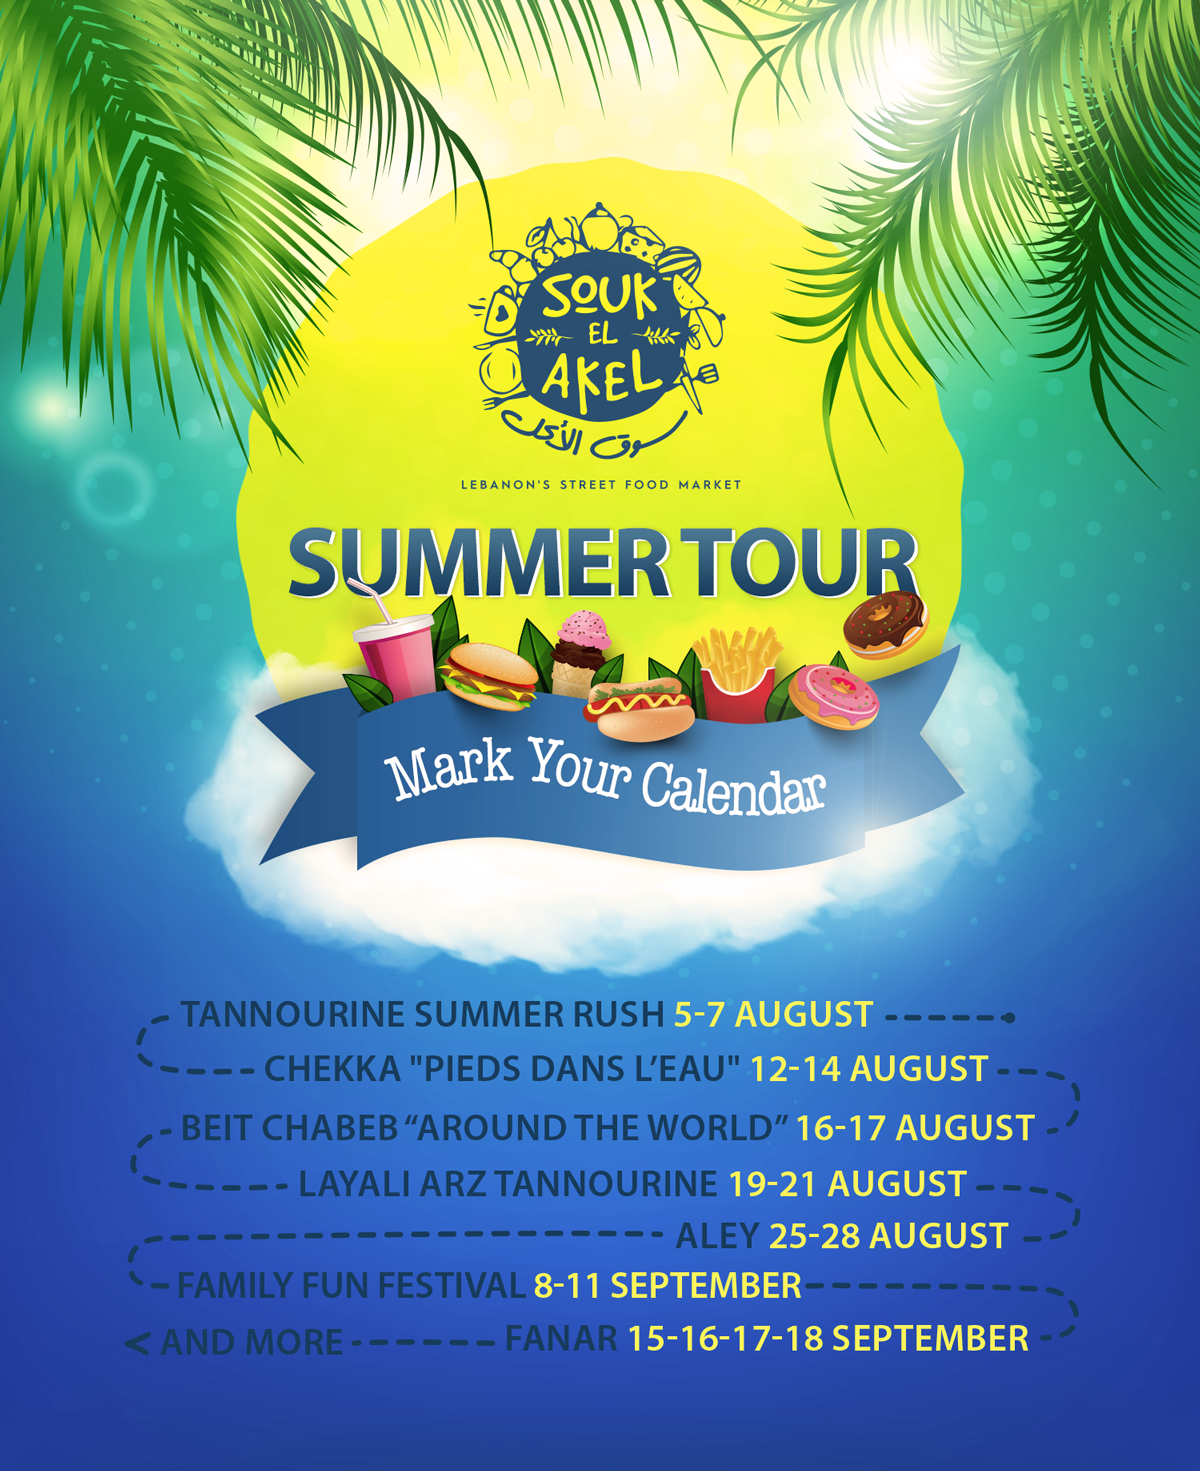 Souk-el-Akl-Summer-Tour